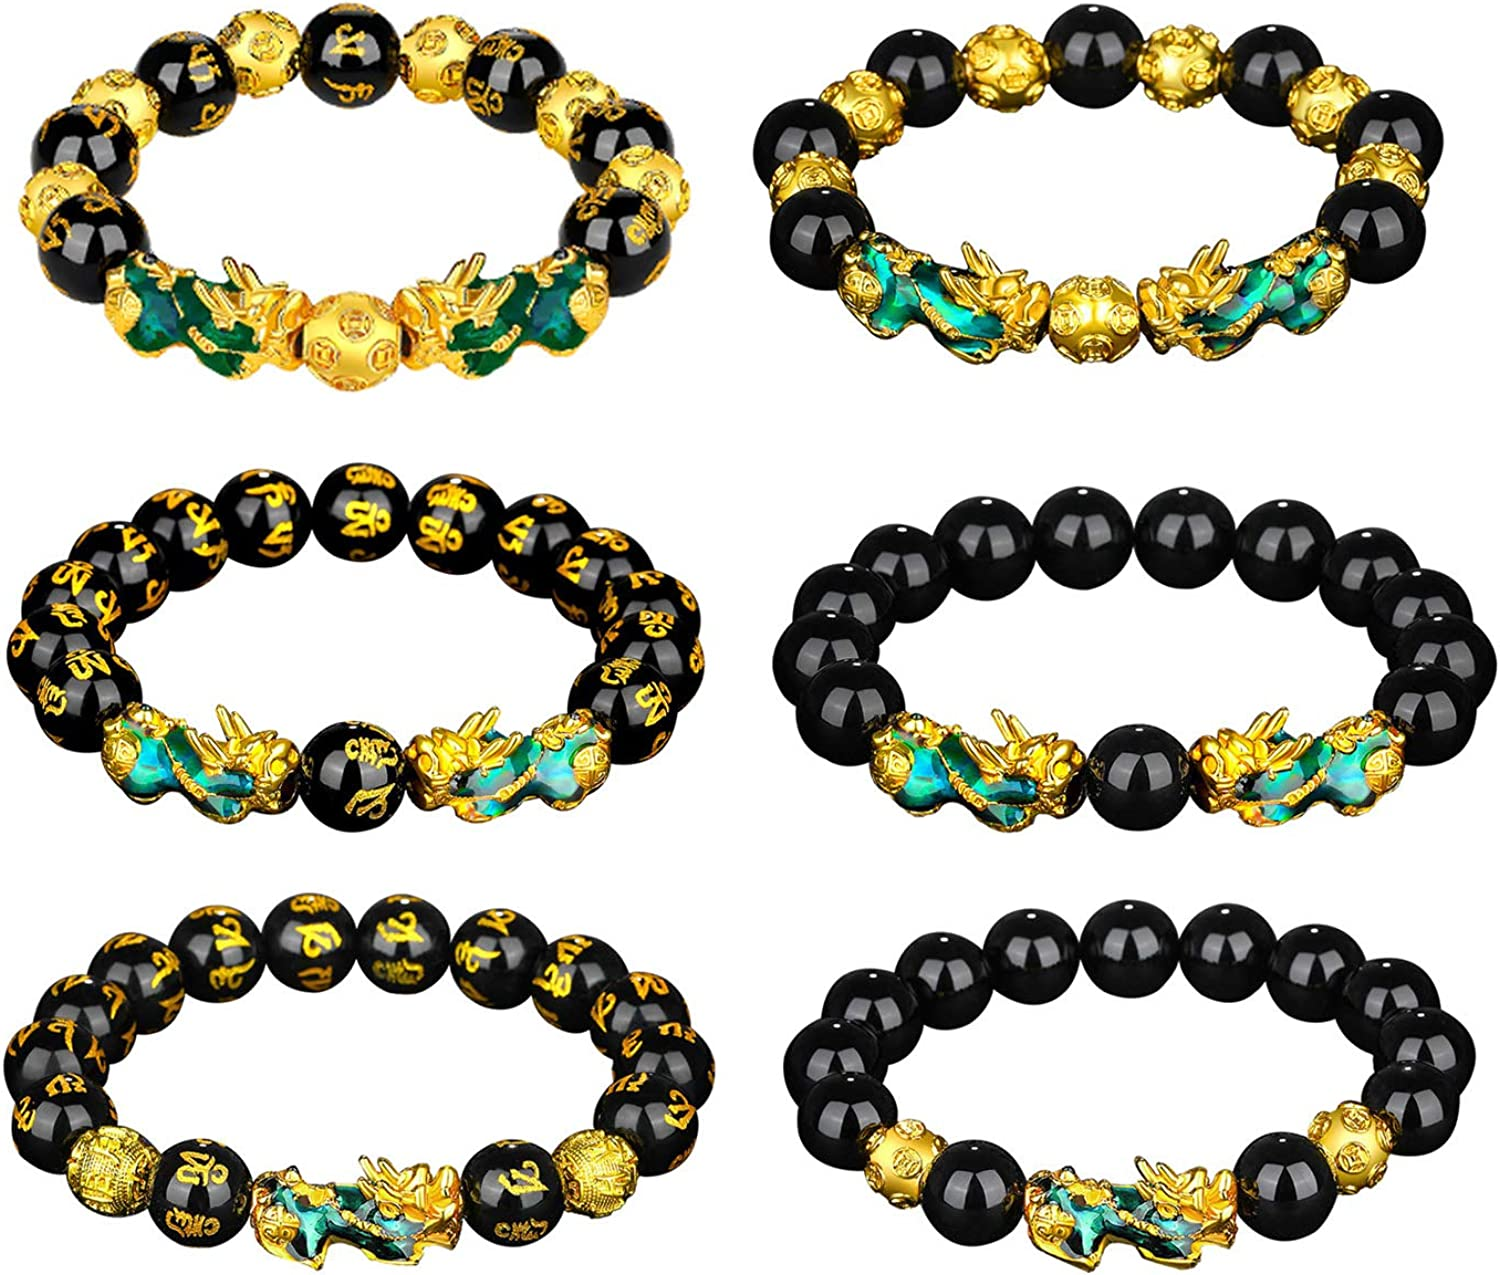 Nanafast 8 Pcs Feng Shui Pixiu Bracelets Necklace Set for Women Men Hand Carved Mantra Beads Pi Xiu Bracelet for Attracting Wealth and Good Luck Girls Boys Gift